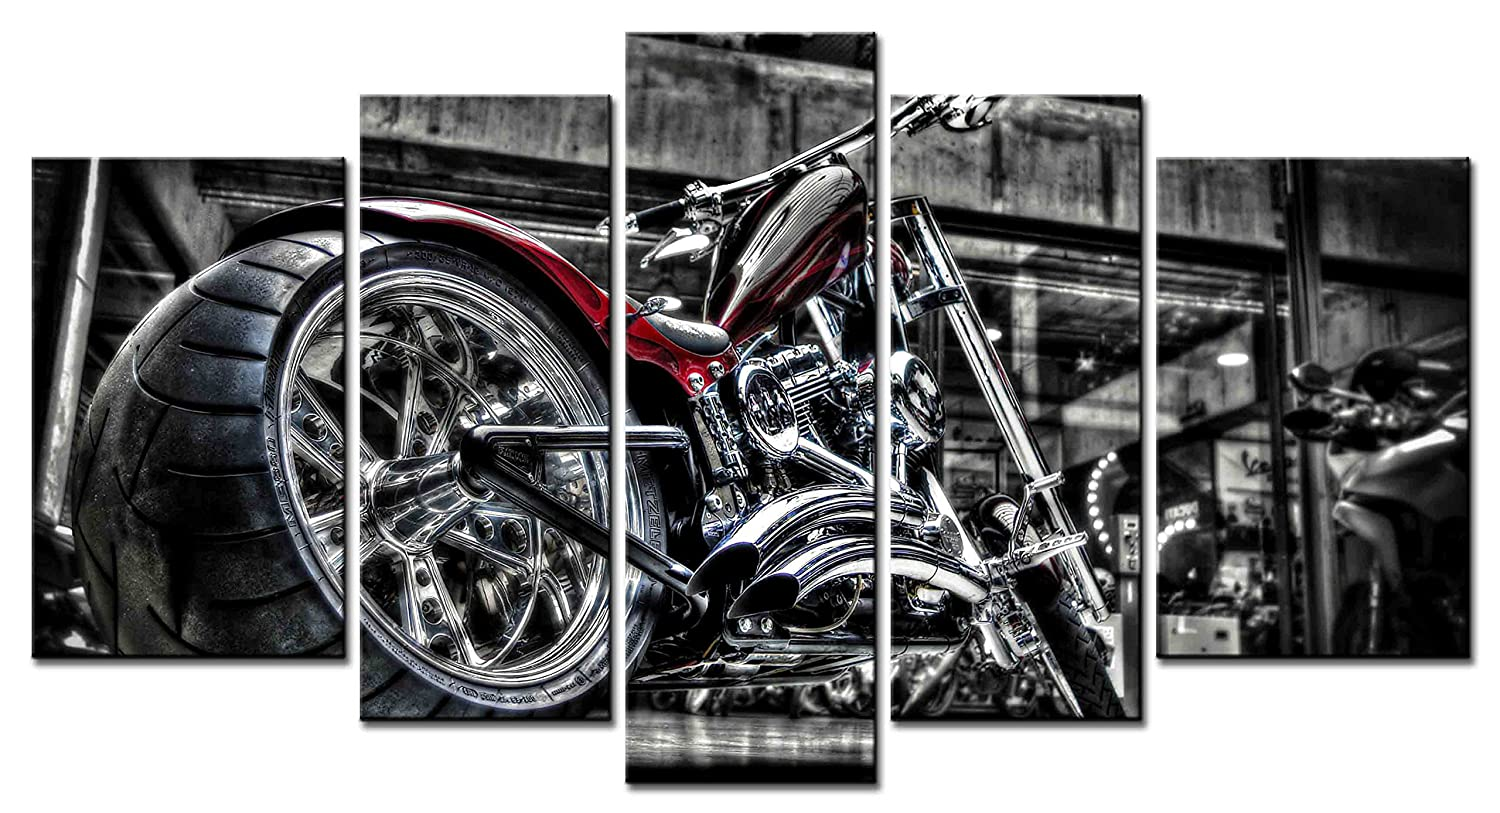 Smartwallart vehicle series home decor artwork black and bright motorcycle wall art 5 piece paintngs print on canvas framed for living room